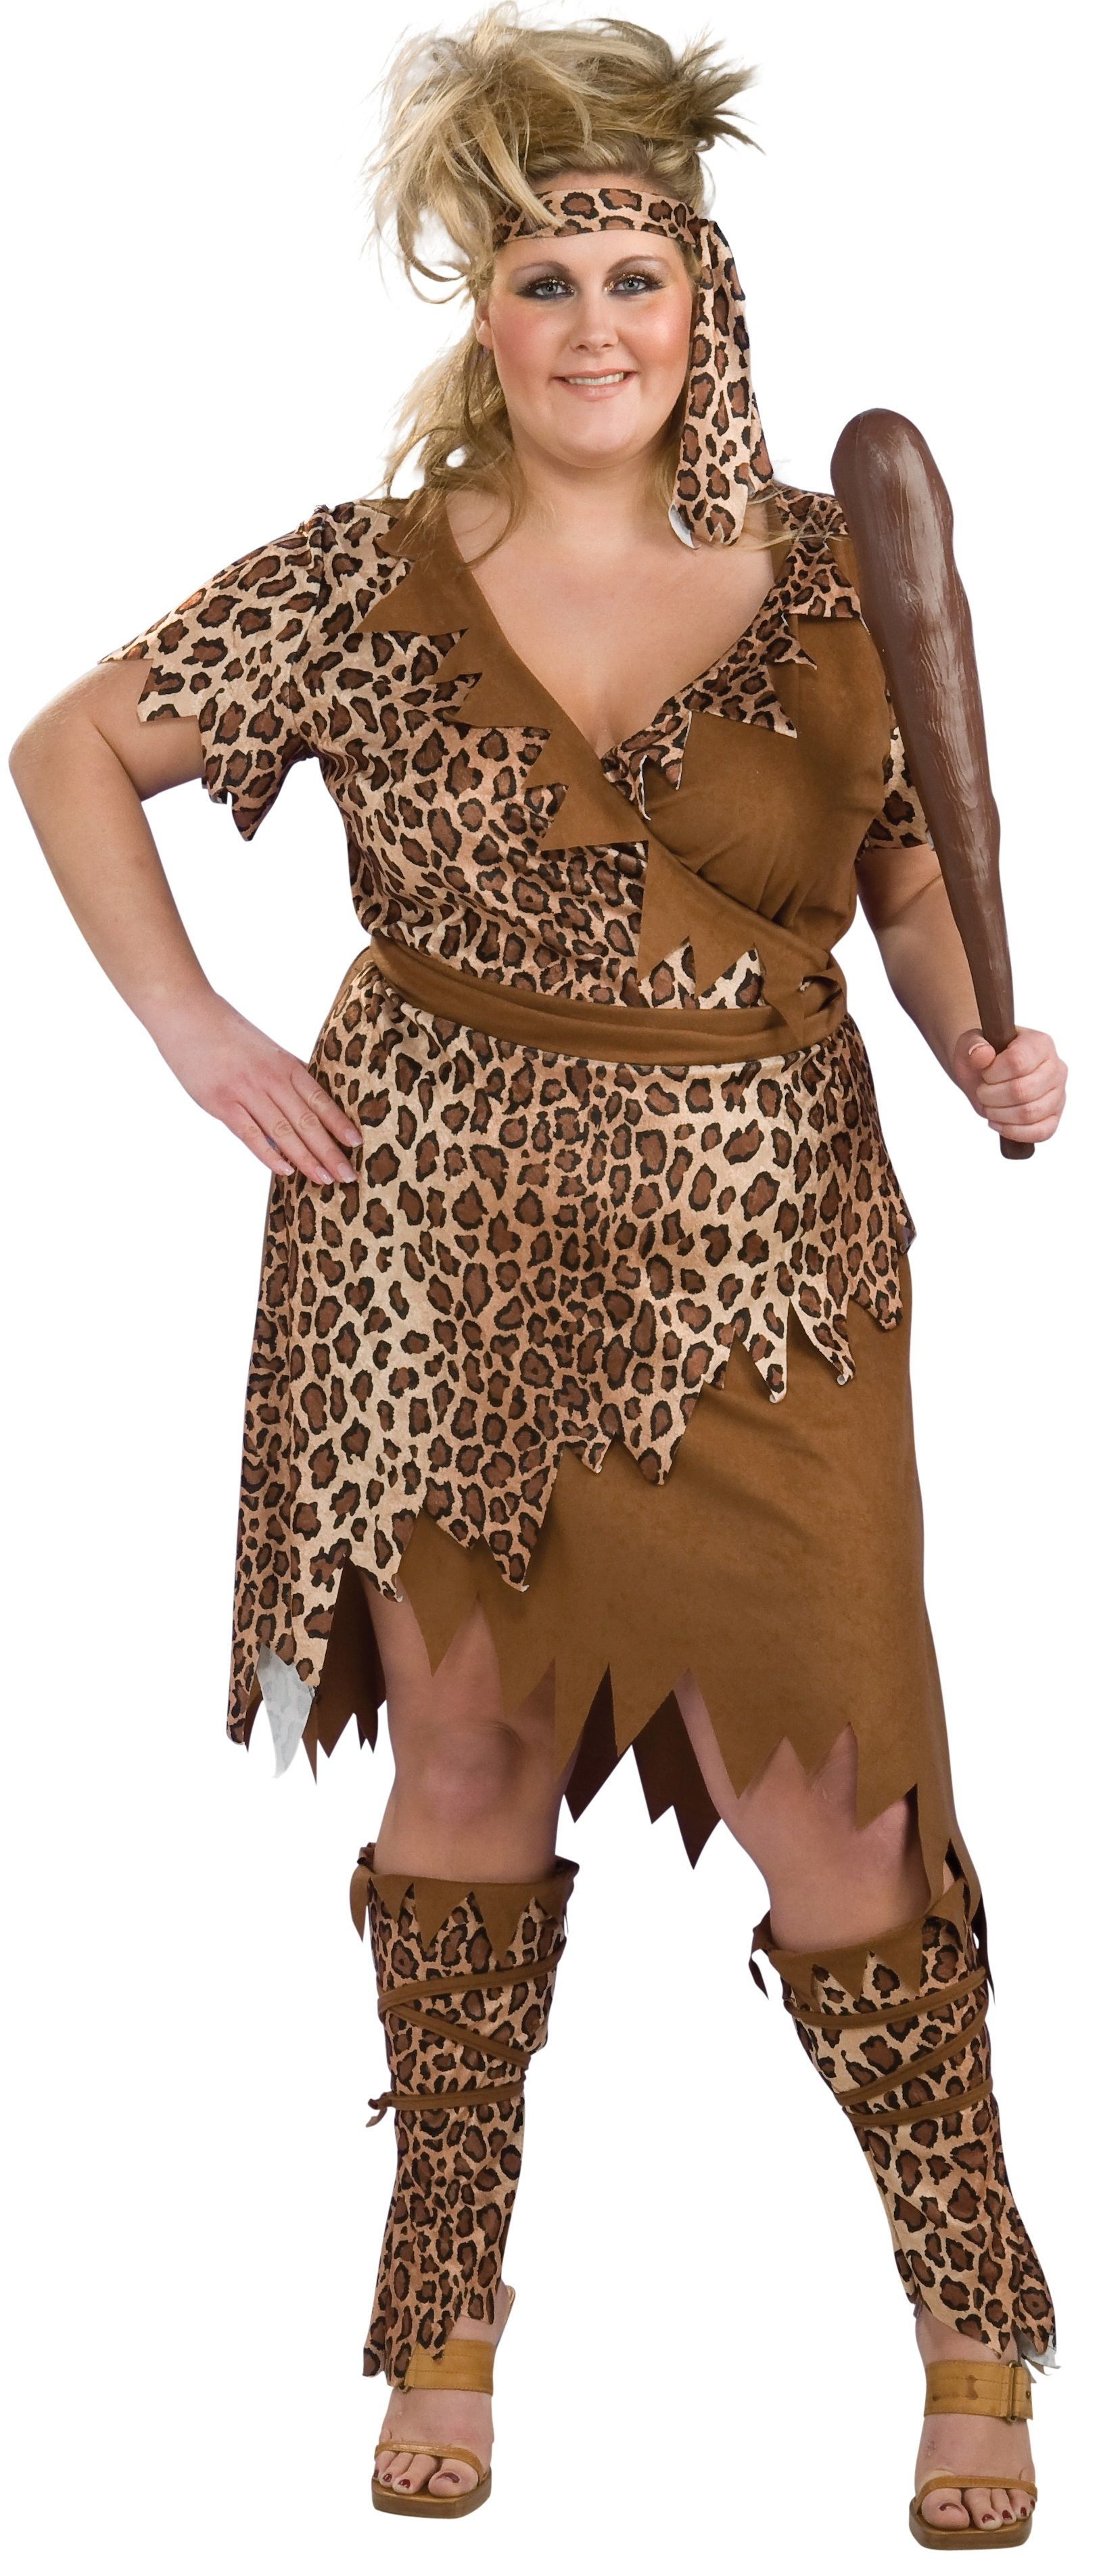 Cavewoman Plus | Cavewoman costume, Costumes and Costume makeup